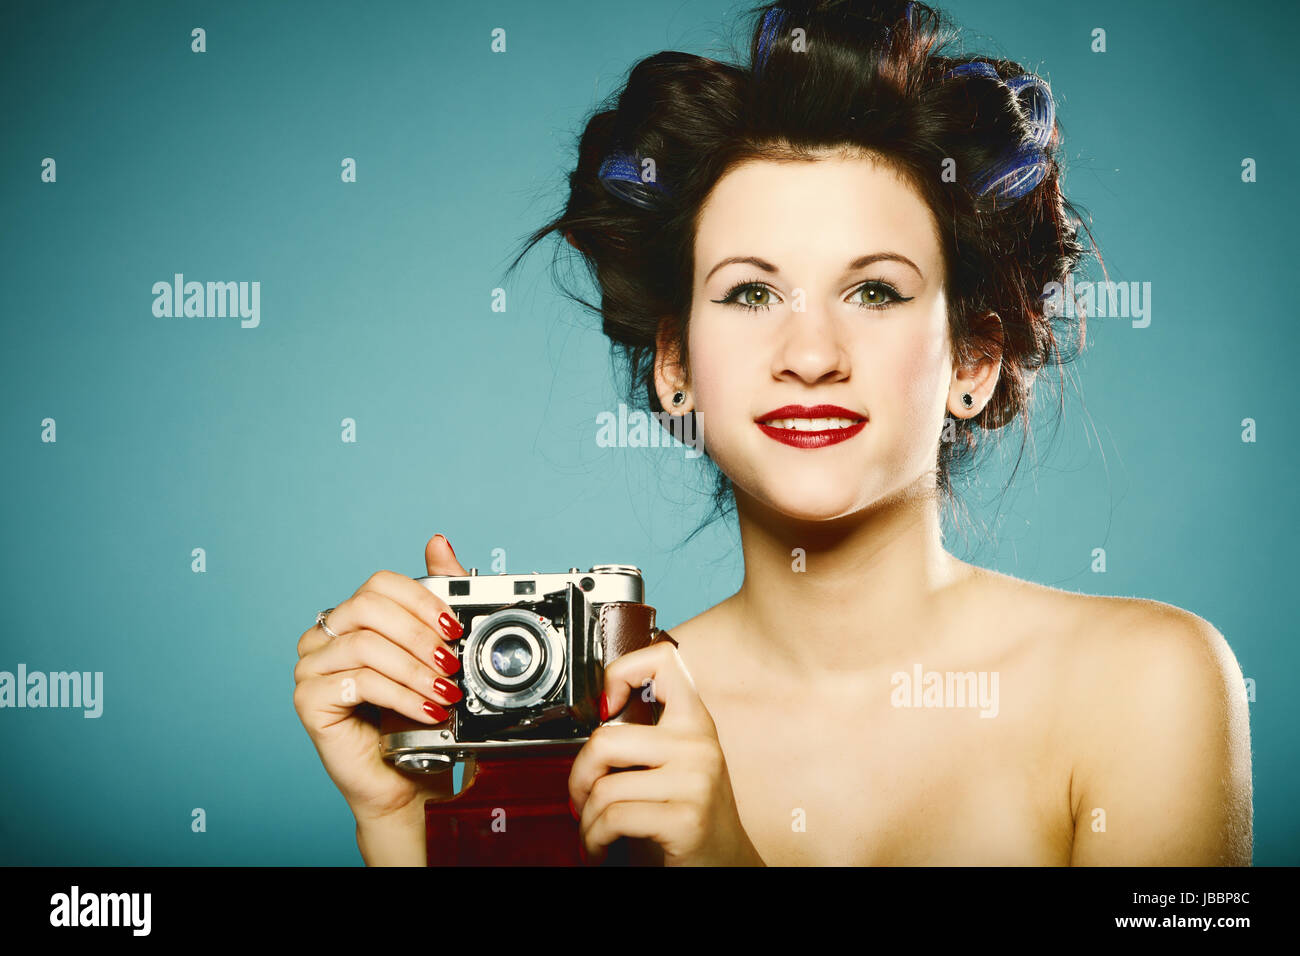 Retro Girl Stock Photos Retro Girl Stock Images Alamy